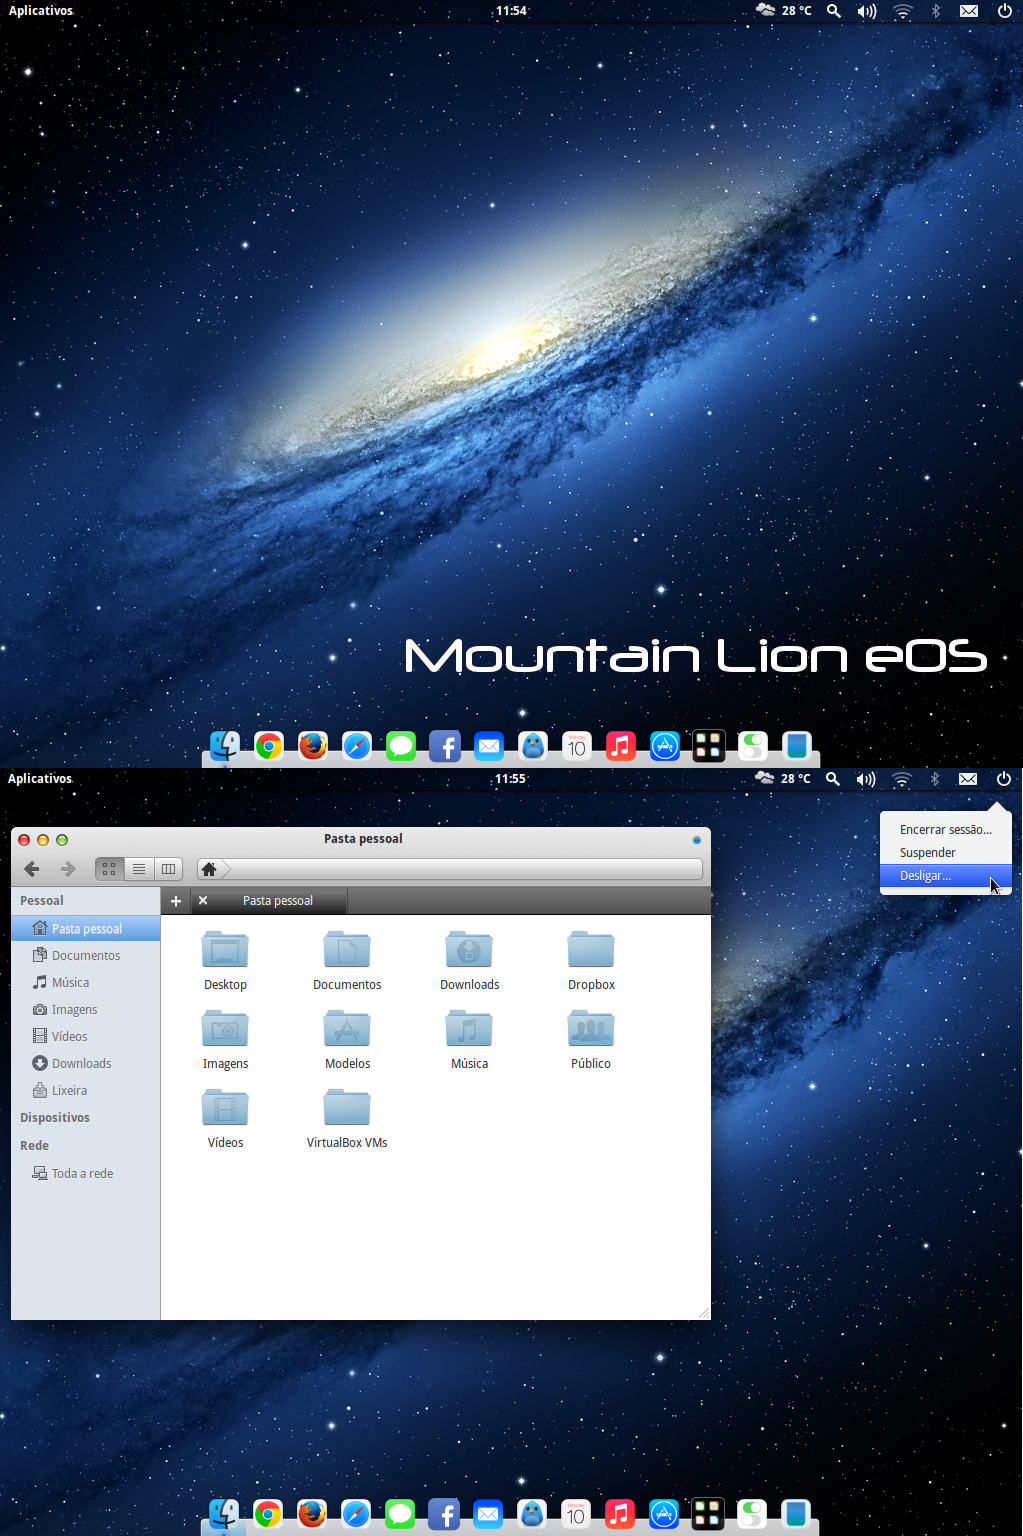 Mountain Lion eOS theme by wendellbarroso